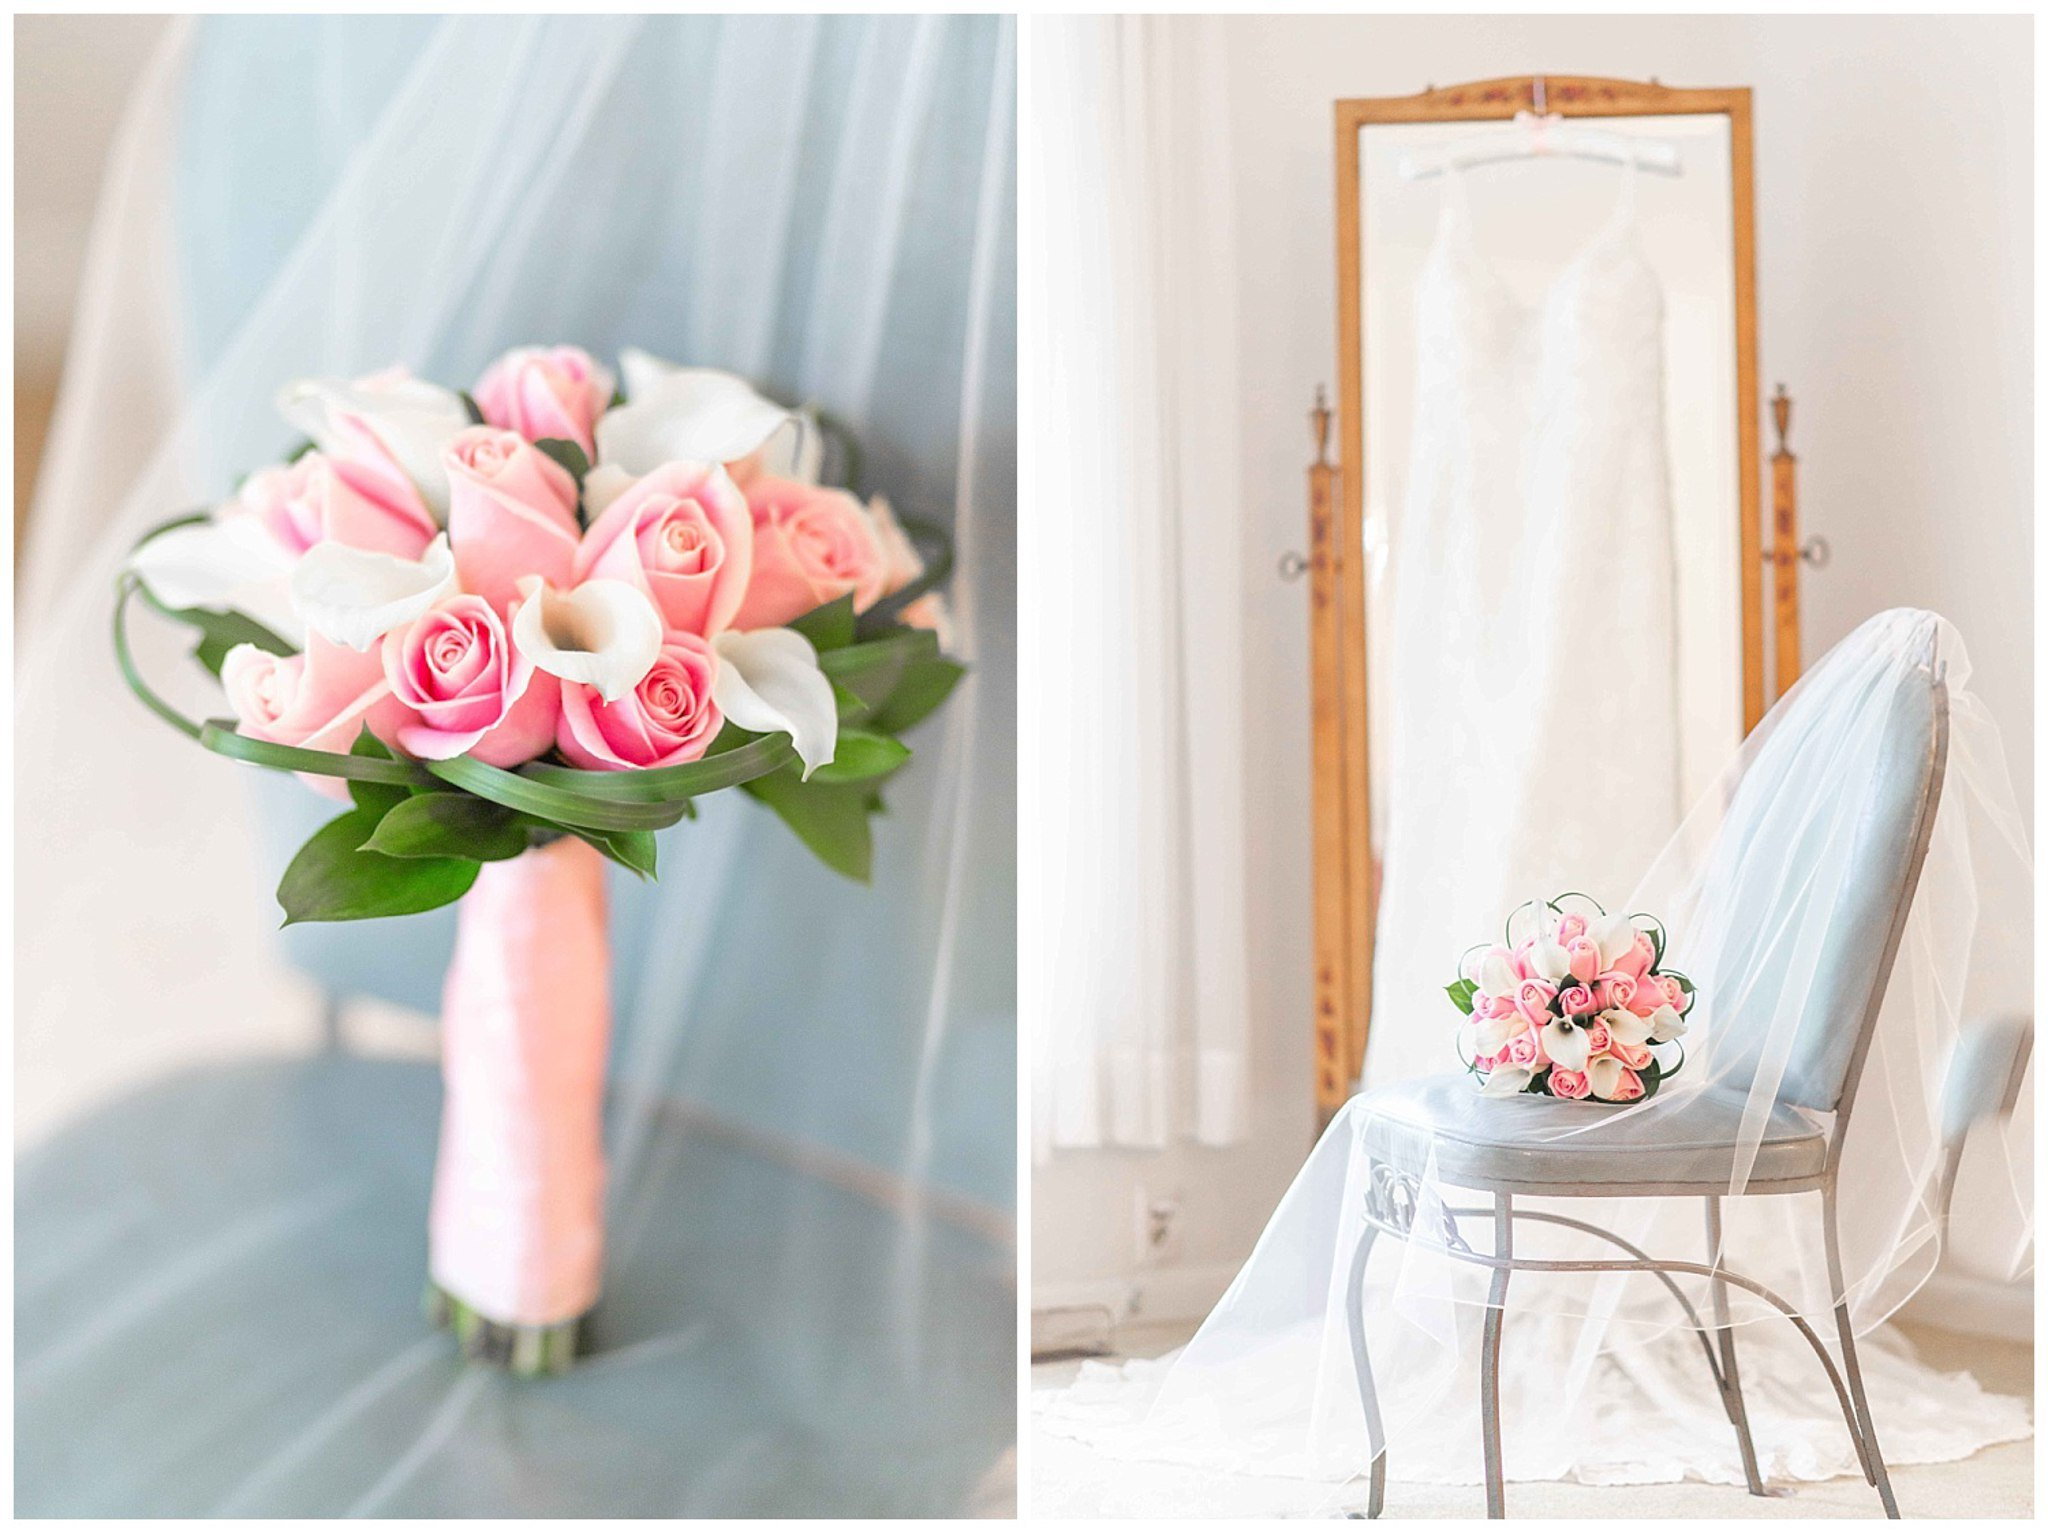 top 5 tips,Wedding dress,Say Yes,wedding planning,baltimore wedding photographers, Say YES To The DRESS!! Top 5 Tips on Picking the PERFECT Wedding Dress, Fine Art Wedding Photographer Baltimore MD, Fine Art Wedding Photographer Baltimore MD